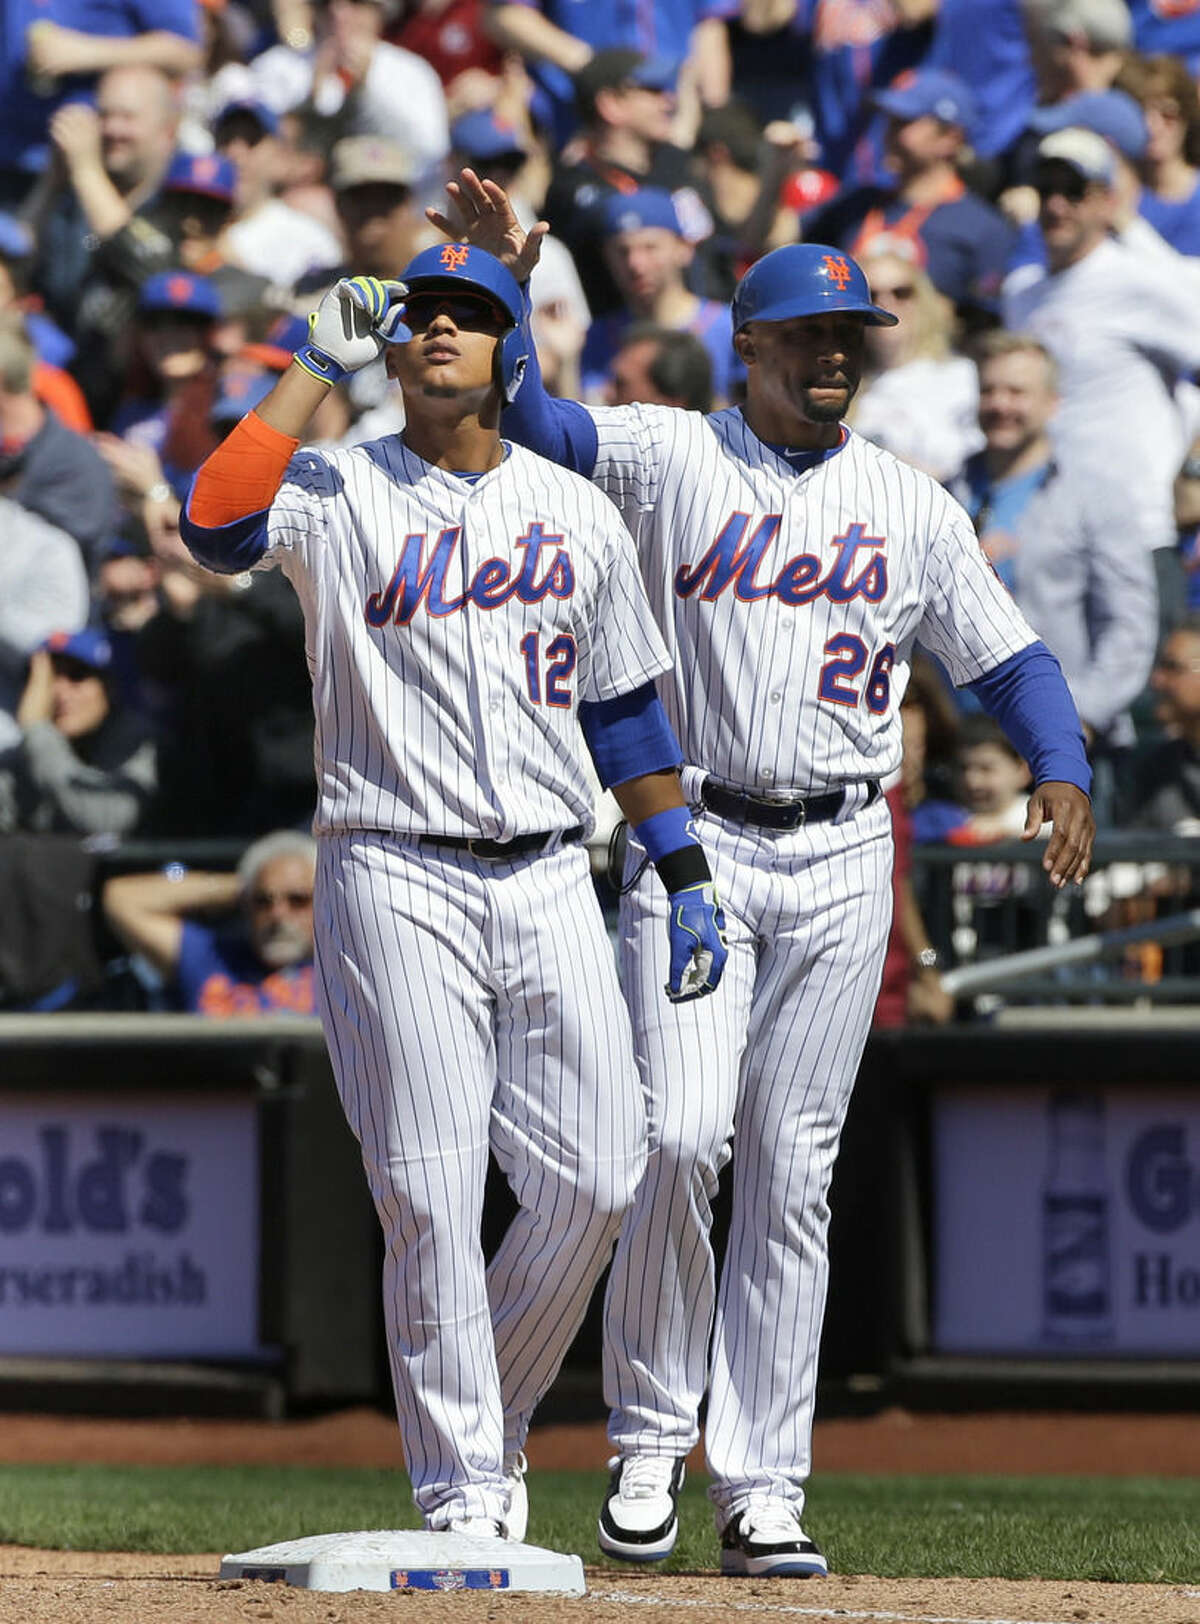 New York Mets' Juan Lagares, left, celebrates with first base coach Tom Goodwin after hitting an RBI single during the fourth inning of the baseball game against the Philadelphia Phillies at Citi Field, Monday, April 13, 2015 in New York. (AP Photo/Seth Wenig)